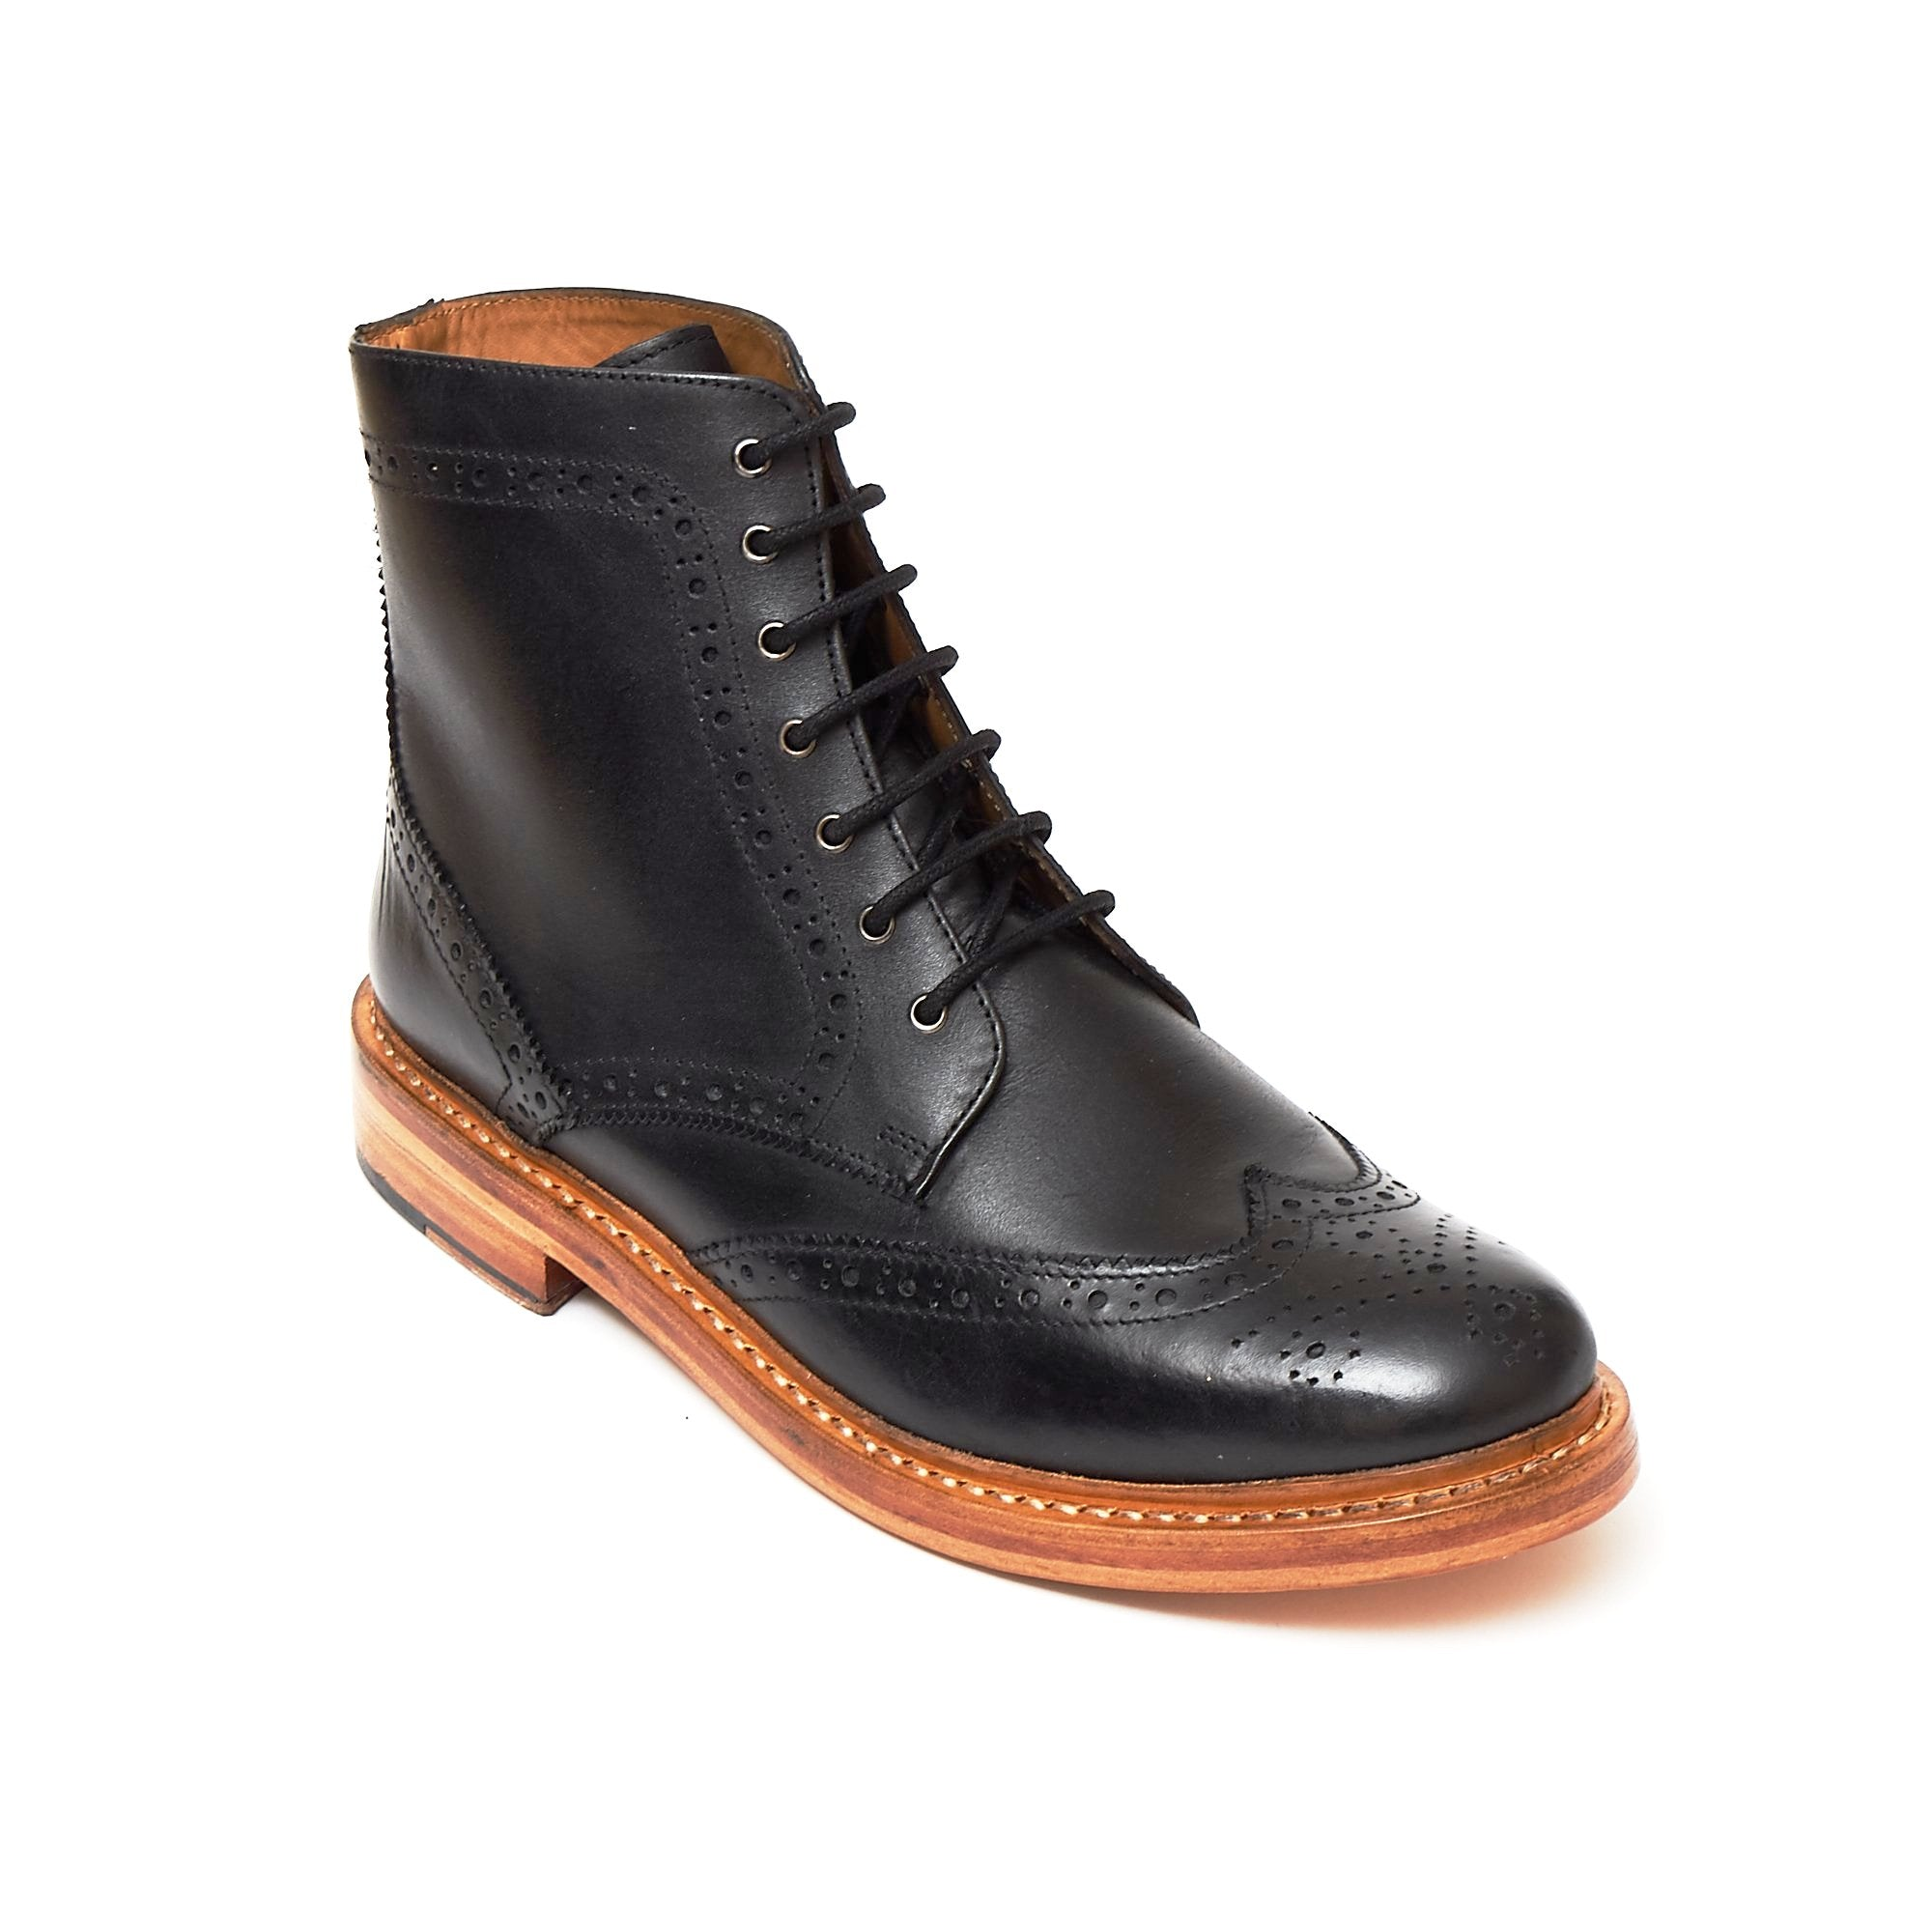 Mens Leather Goodyear Welted Lace Up Boots - 17939 Black